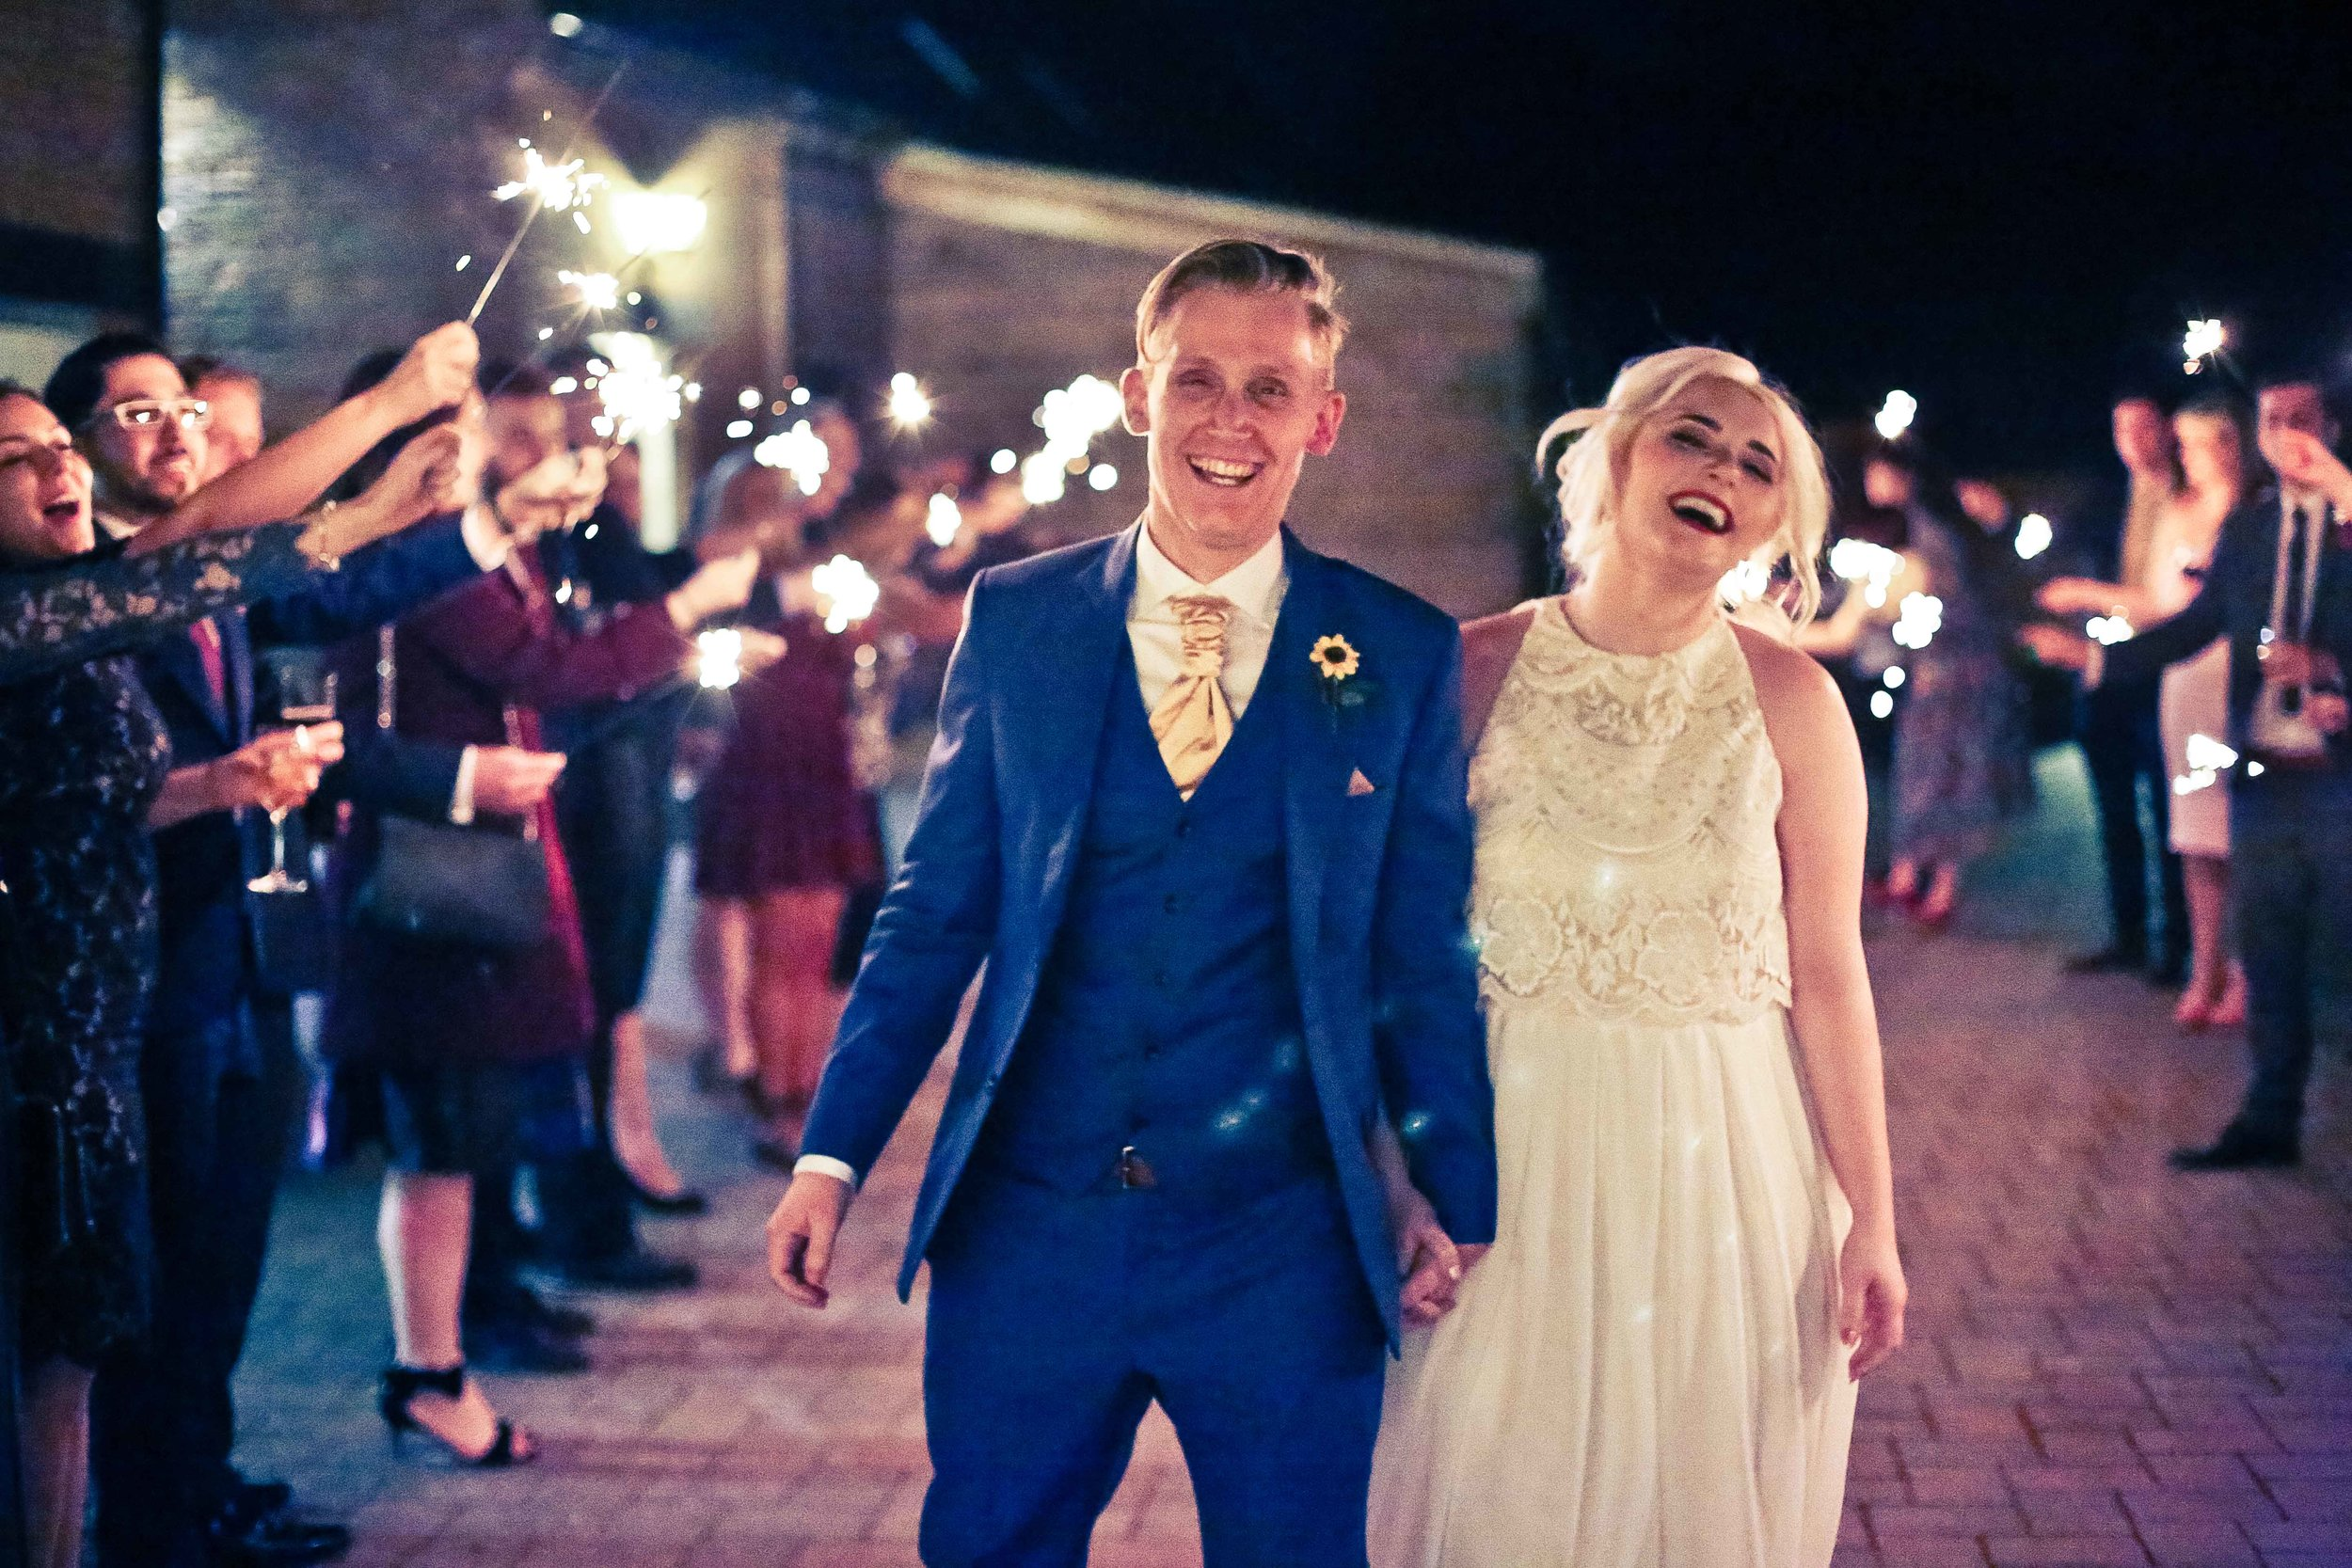 Creative documentary wedding photography by Daria Nova, wedding photographer in Surrey and South West London. Wedding photography for the less extroverted.